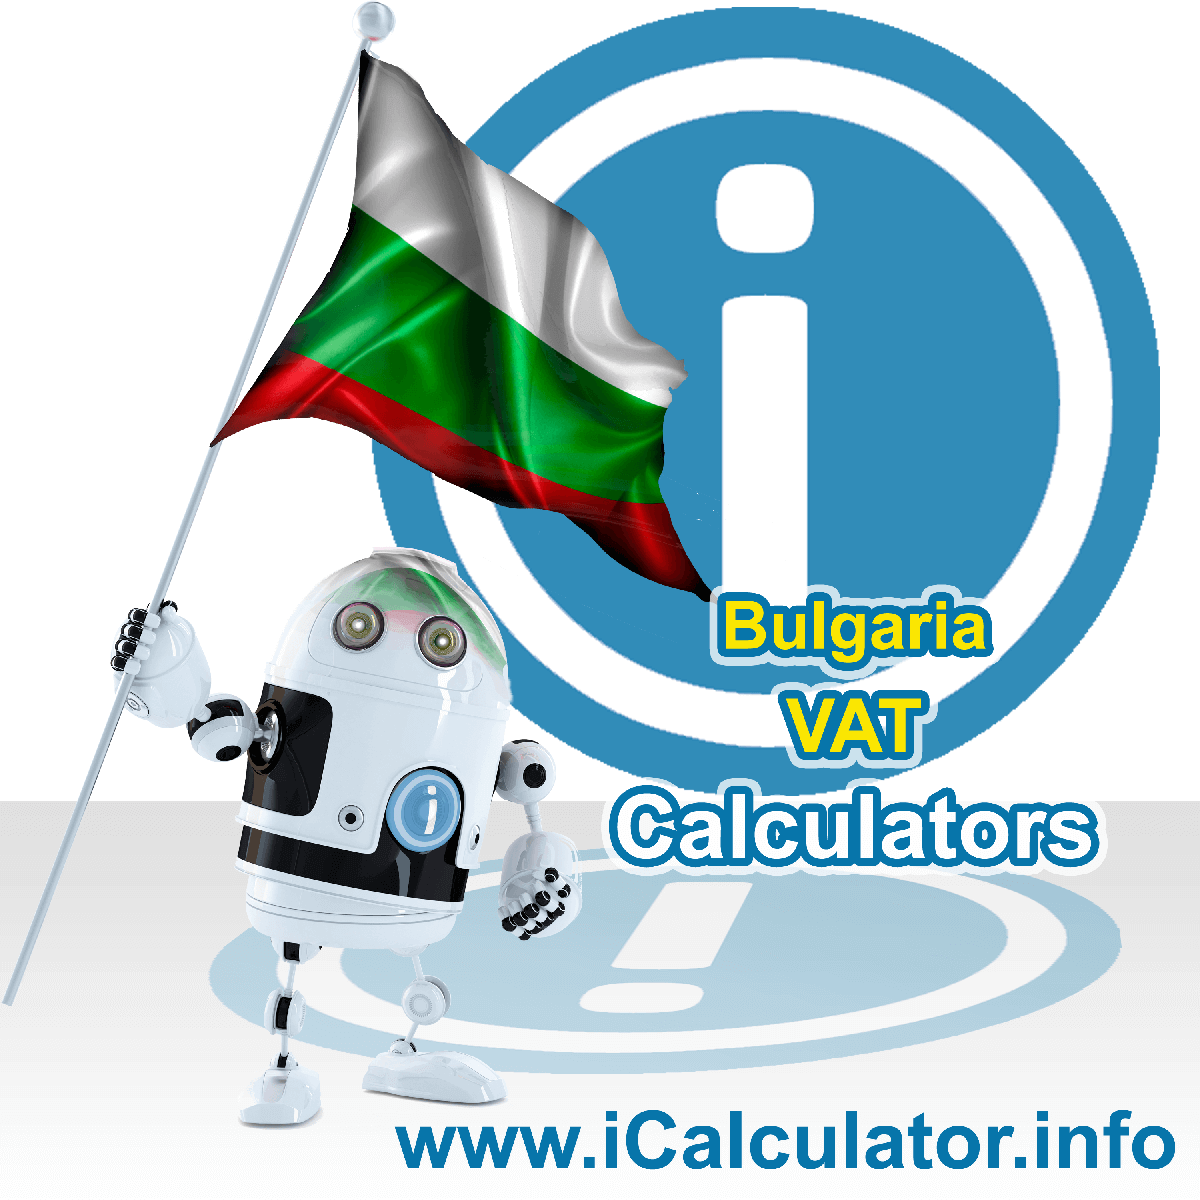 Bulgaria VAT Calculator. This image shows the Bulgaria flag and information relating to the VAT formula used for calculating Value Added Tax in Bulgaria using the Bulgaria VAT Calculator in 2020